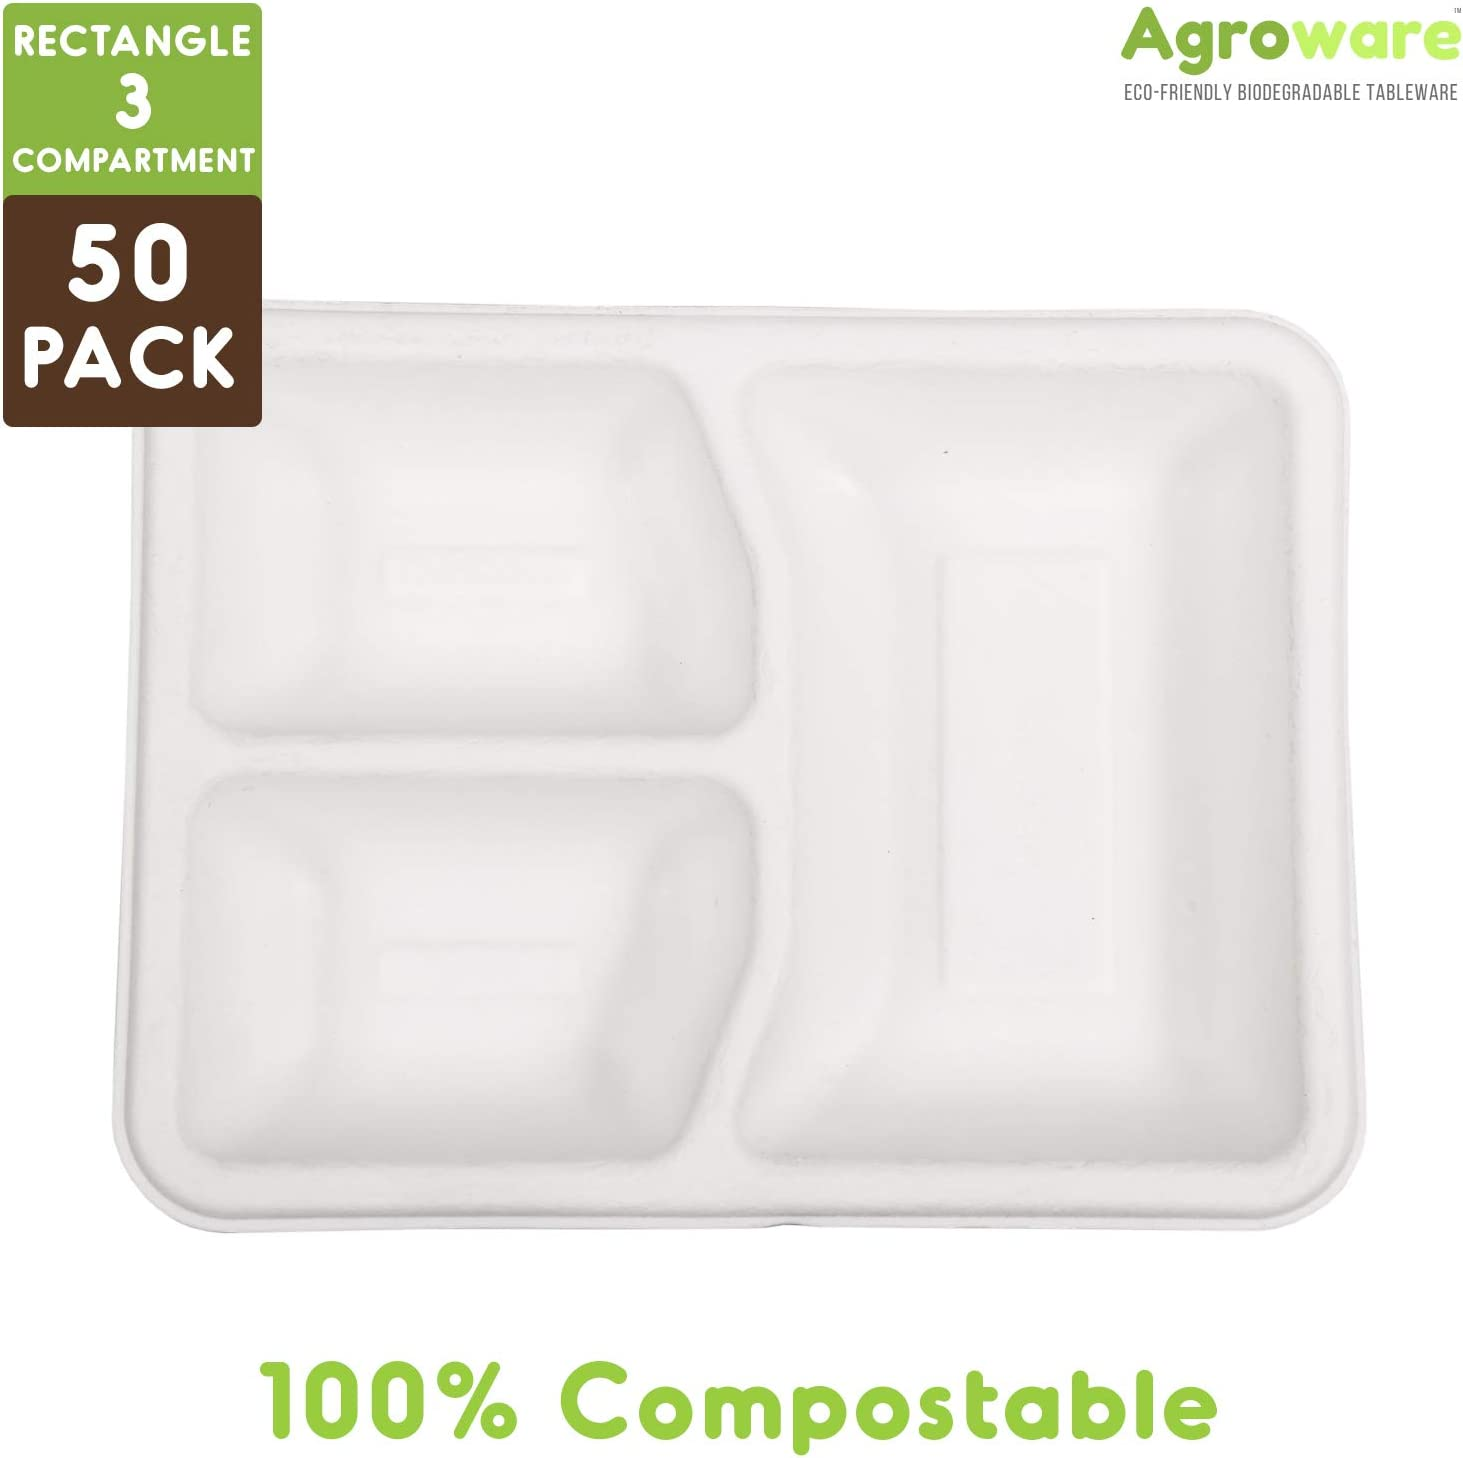 AgroWare Rectangular 3 Compartment Heavy Duty Disposable Tree-Free ...